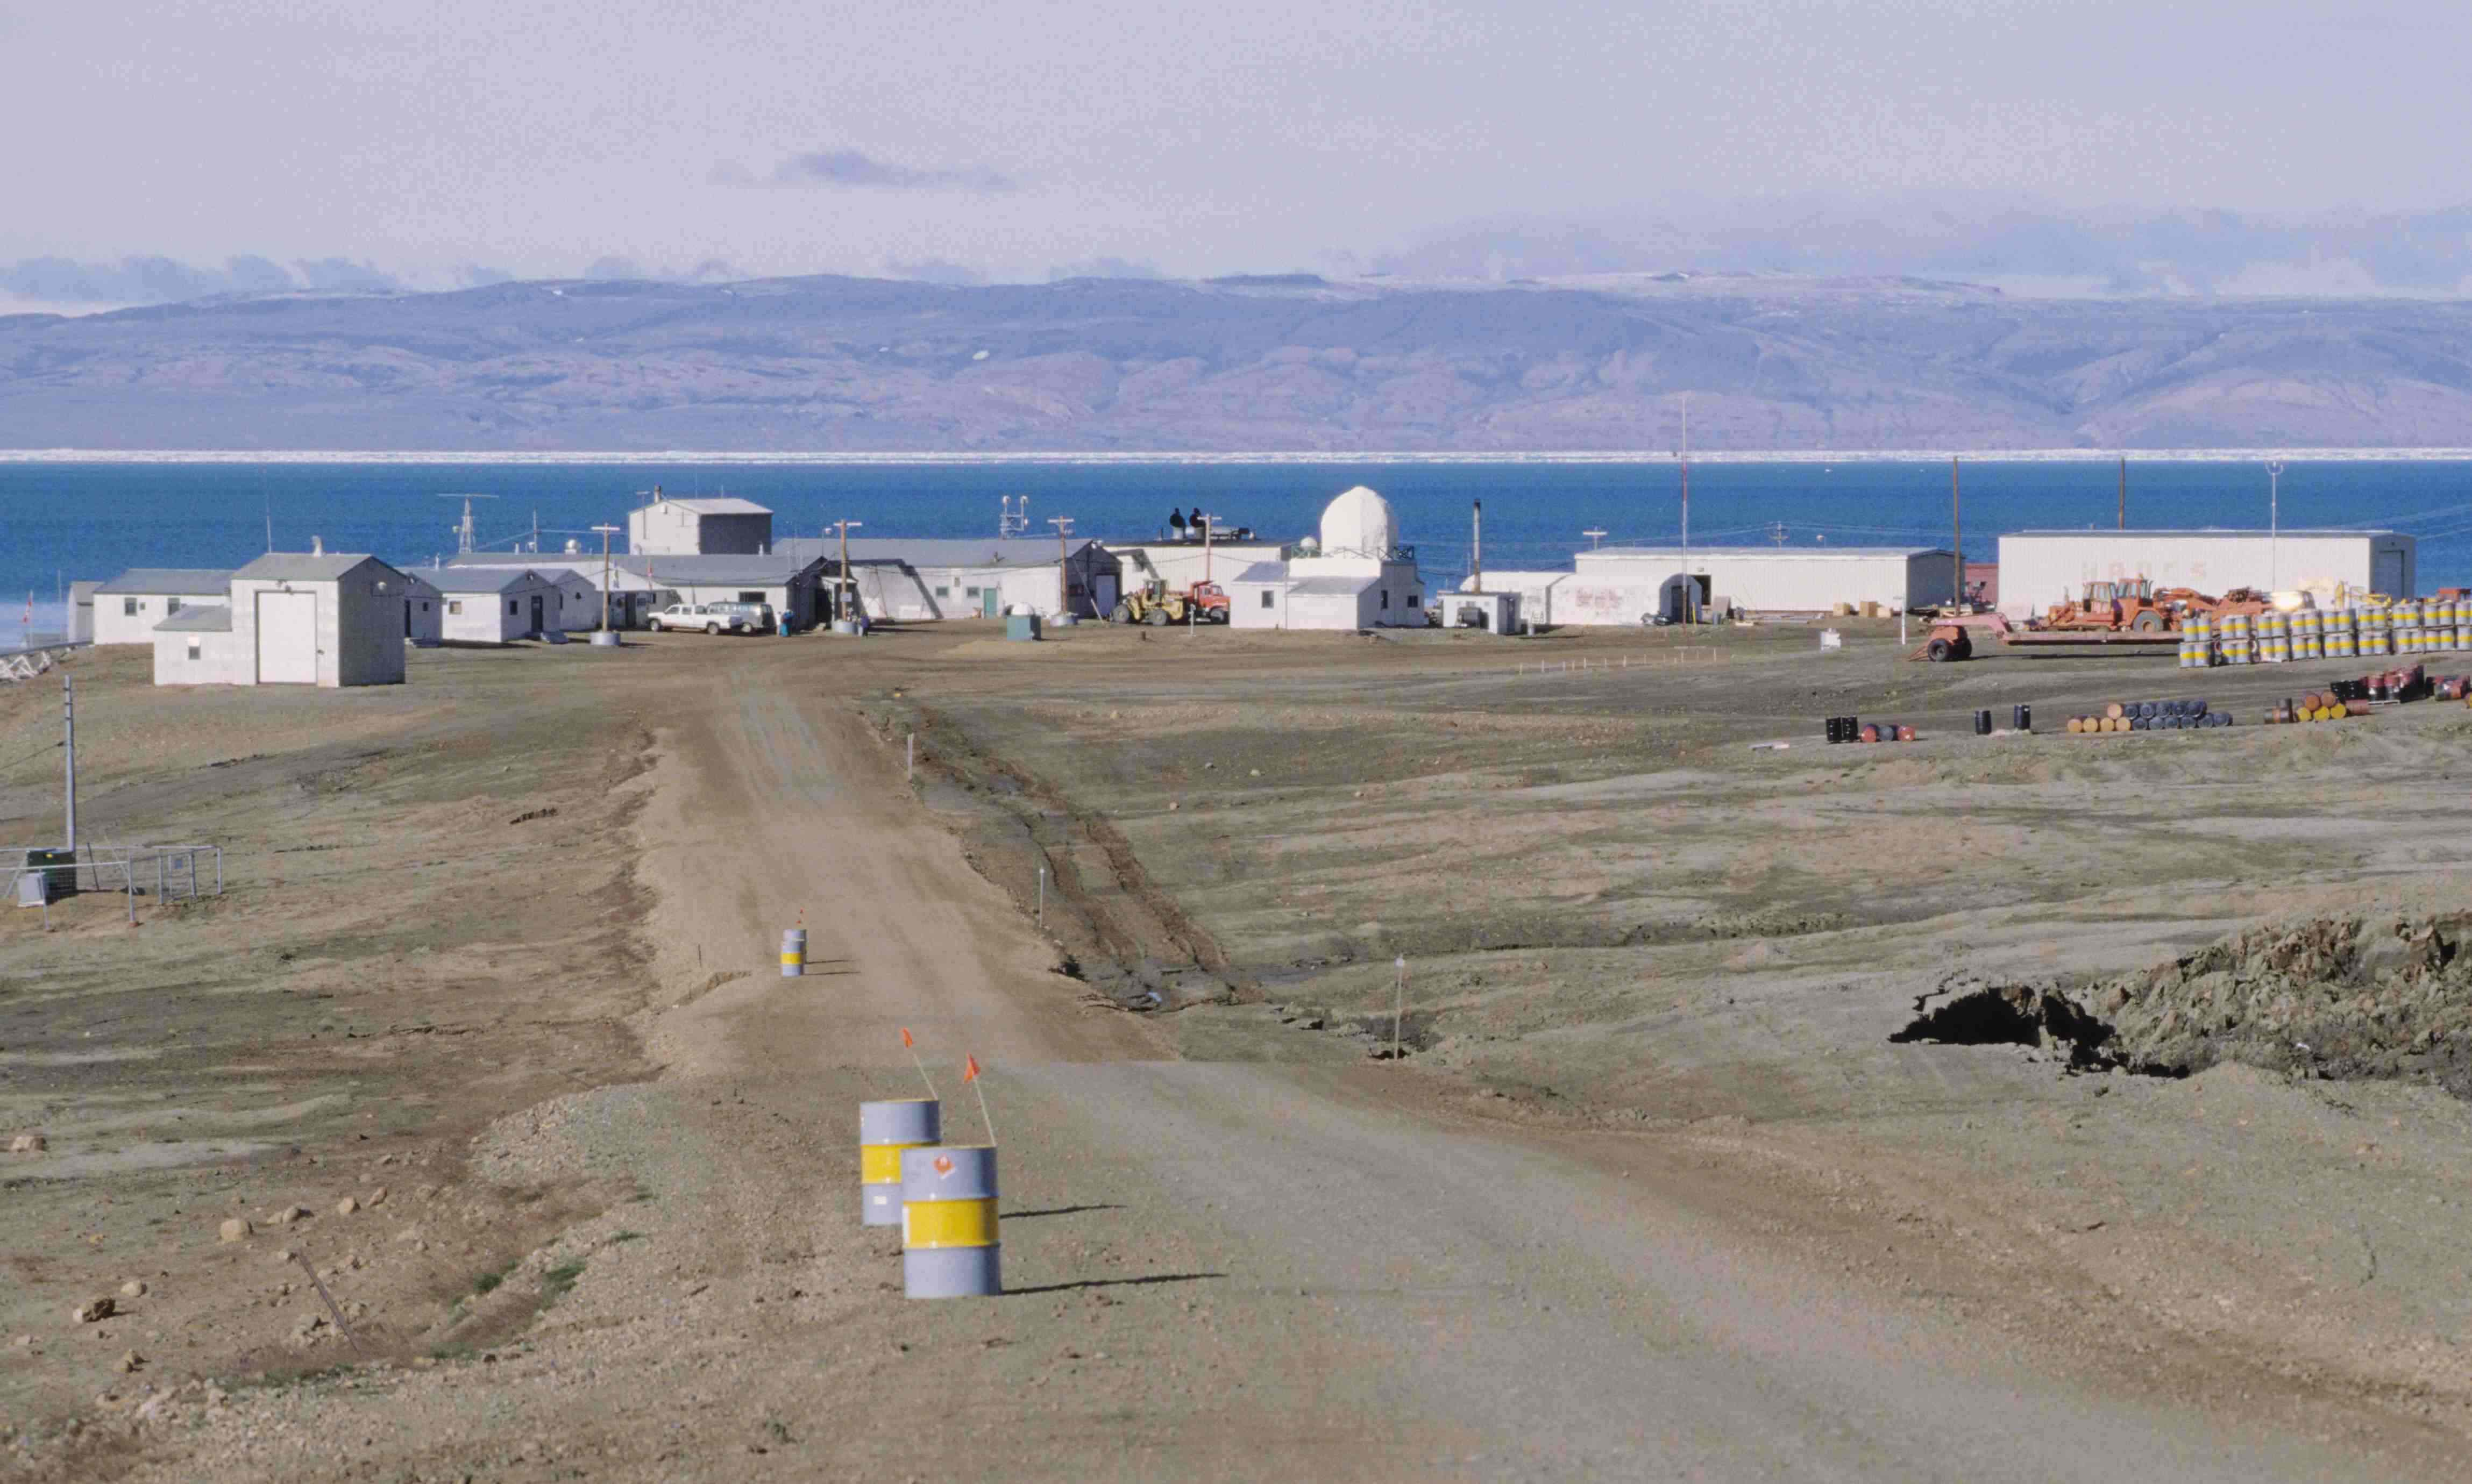 Eureka Nunavut (photo provided by Wikimedia Commons)